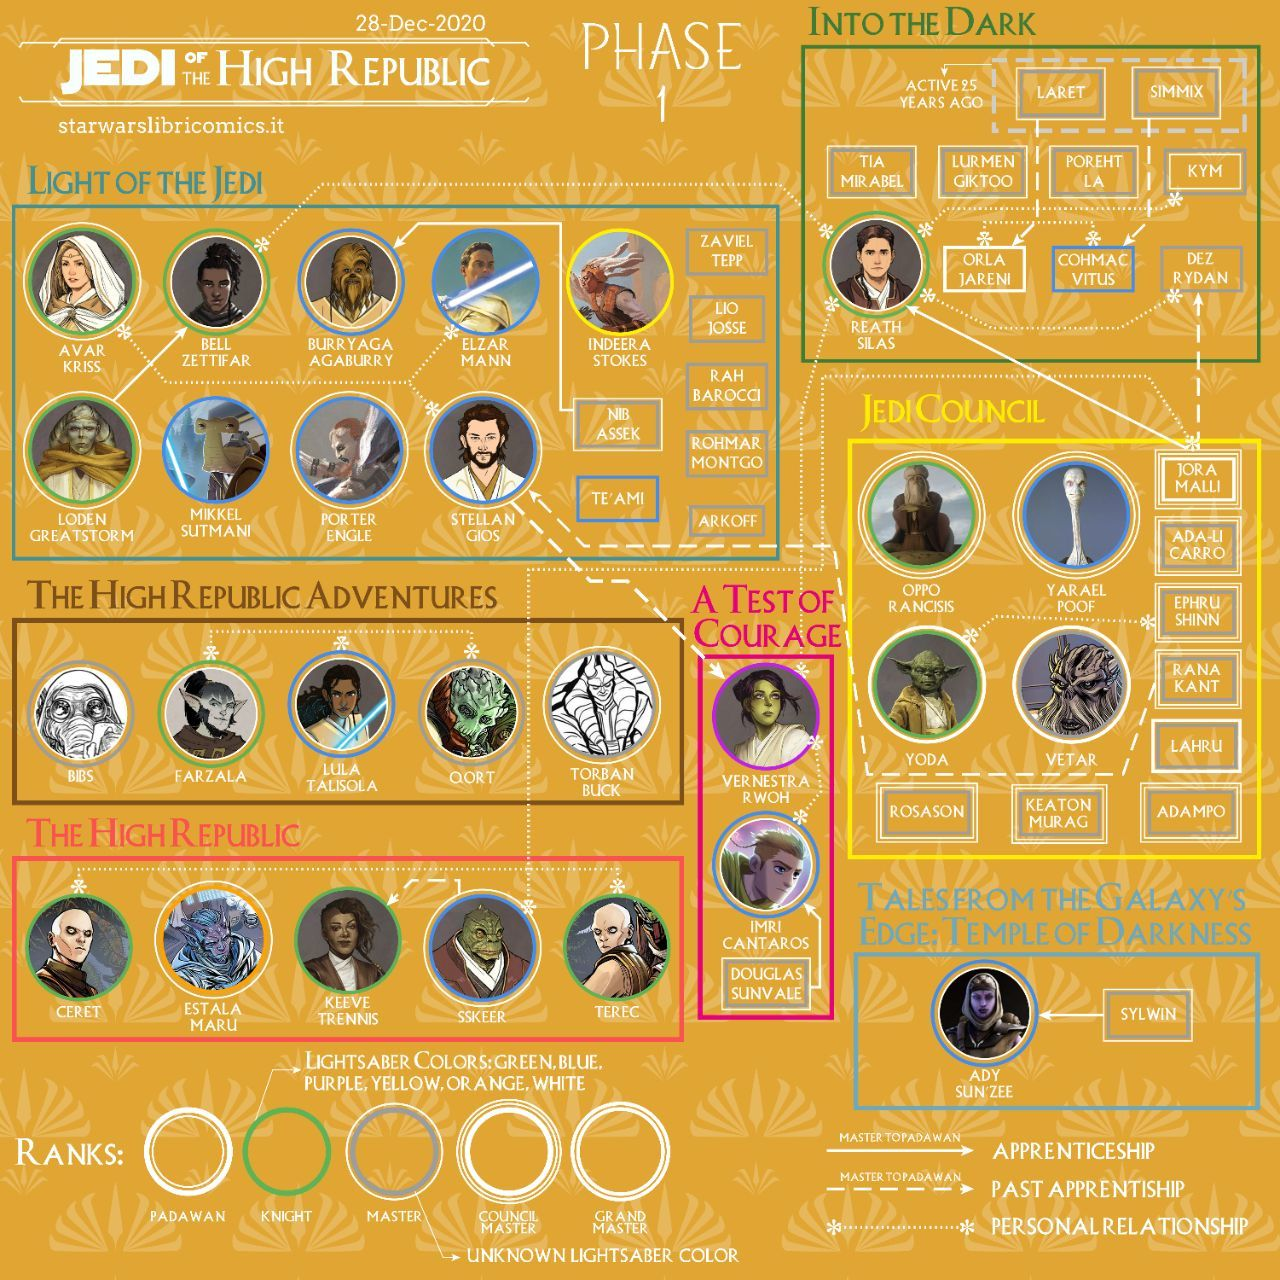 Star Wars: The High Republic's New Jedi Characters Explained in New Infographic